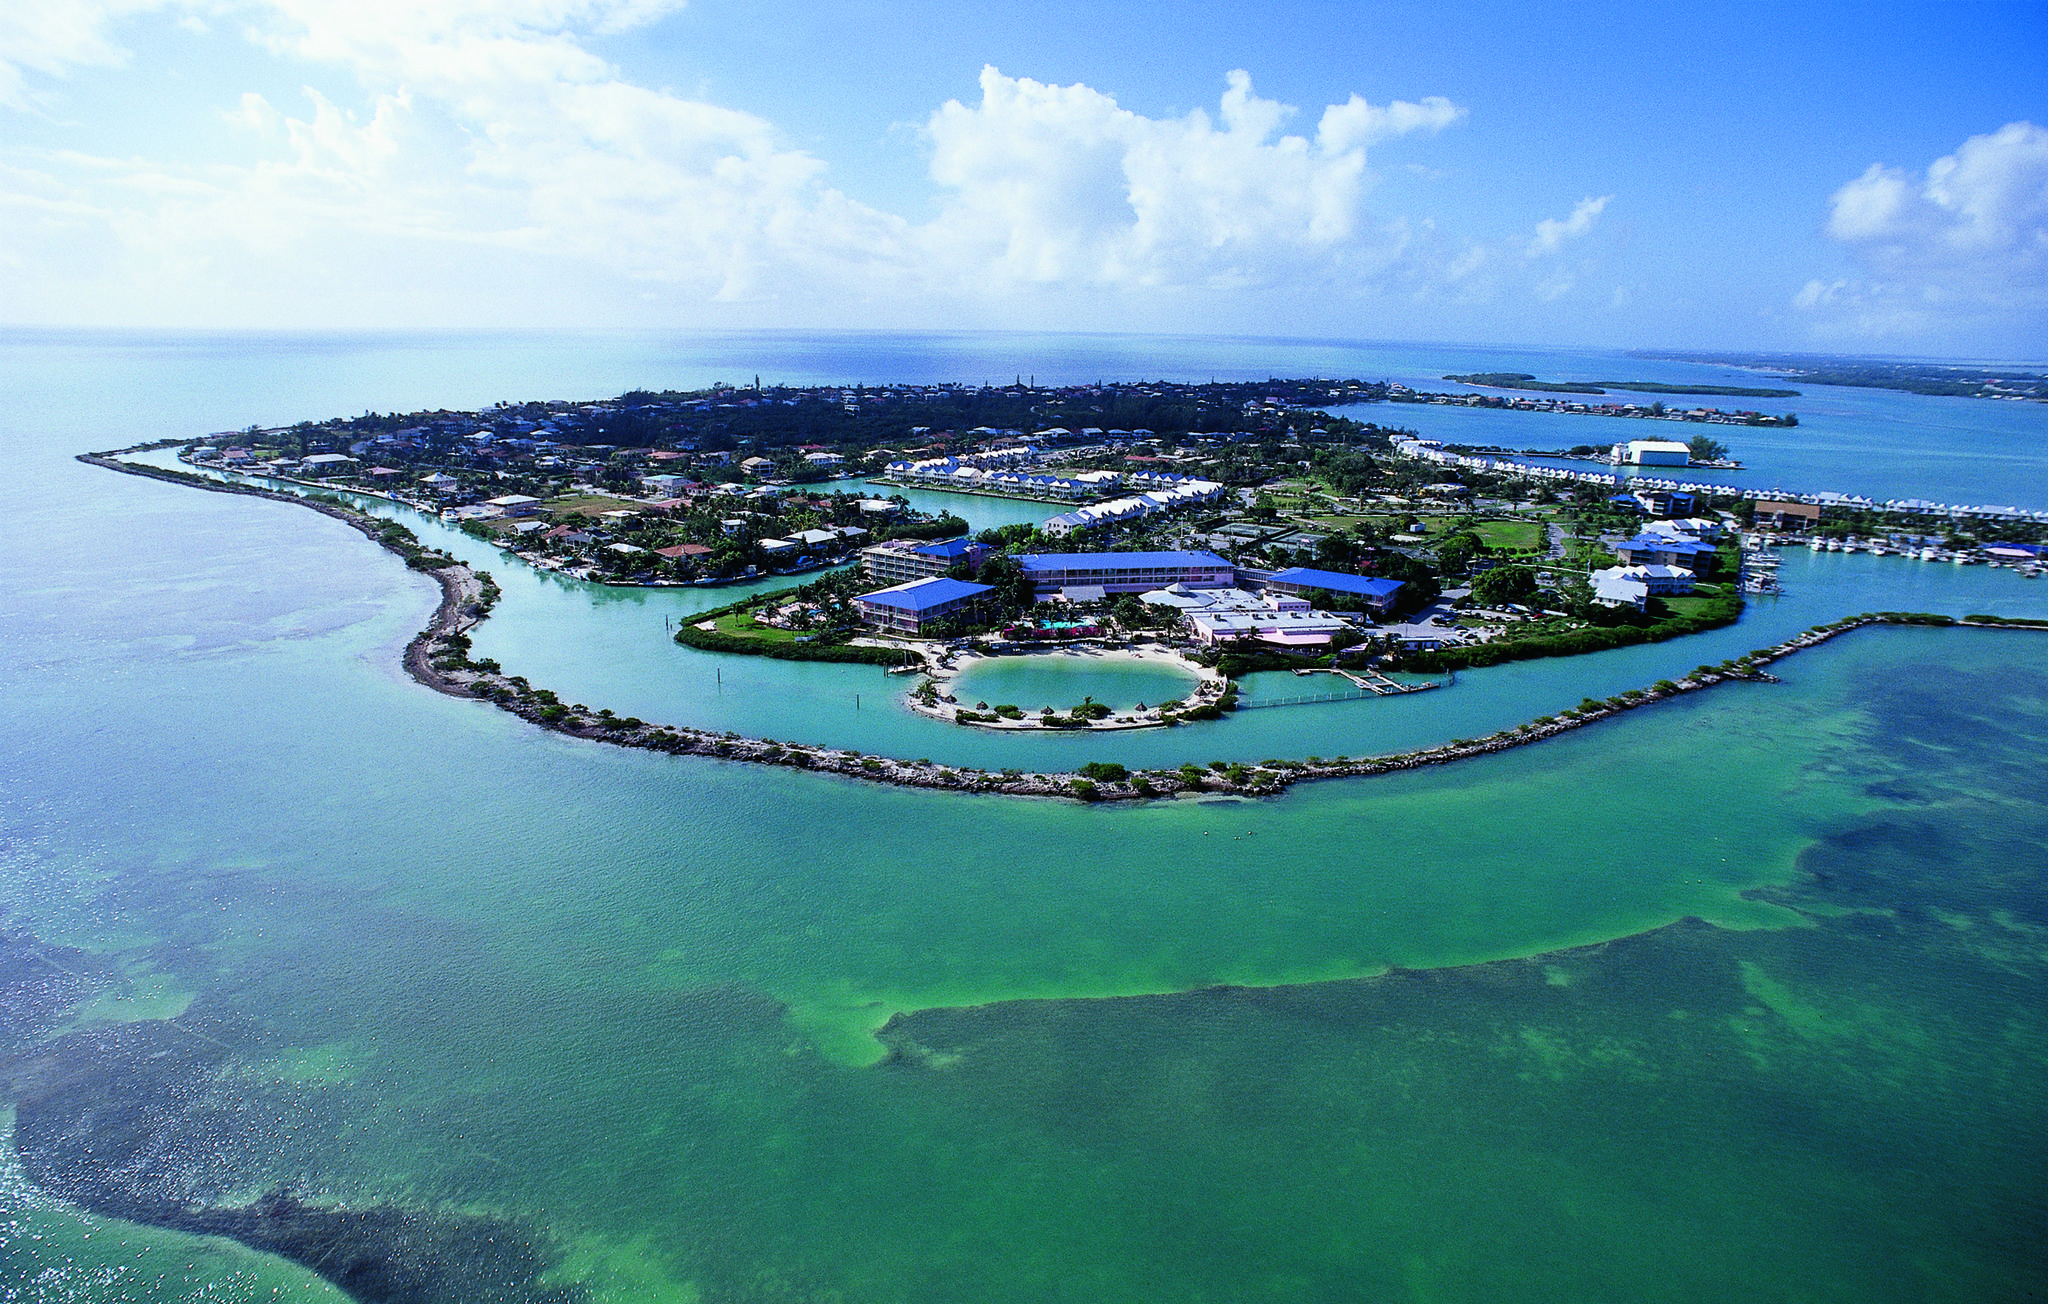 Photo: Aerial view of Hawk's Cay